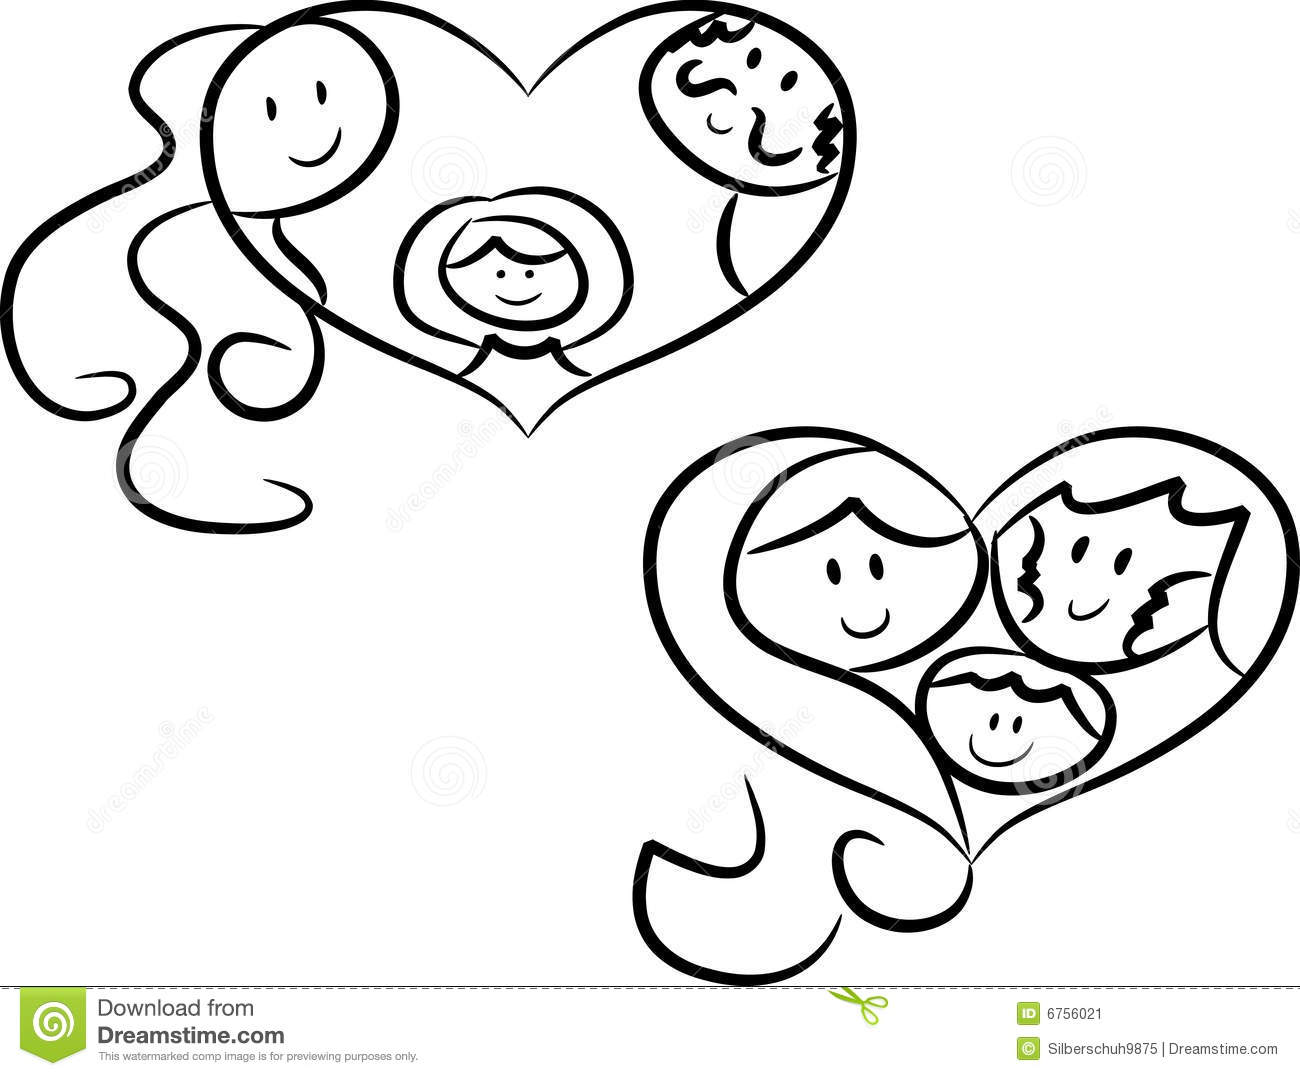 Symbols of family love stock vector. Illustration of ...